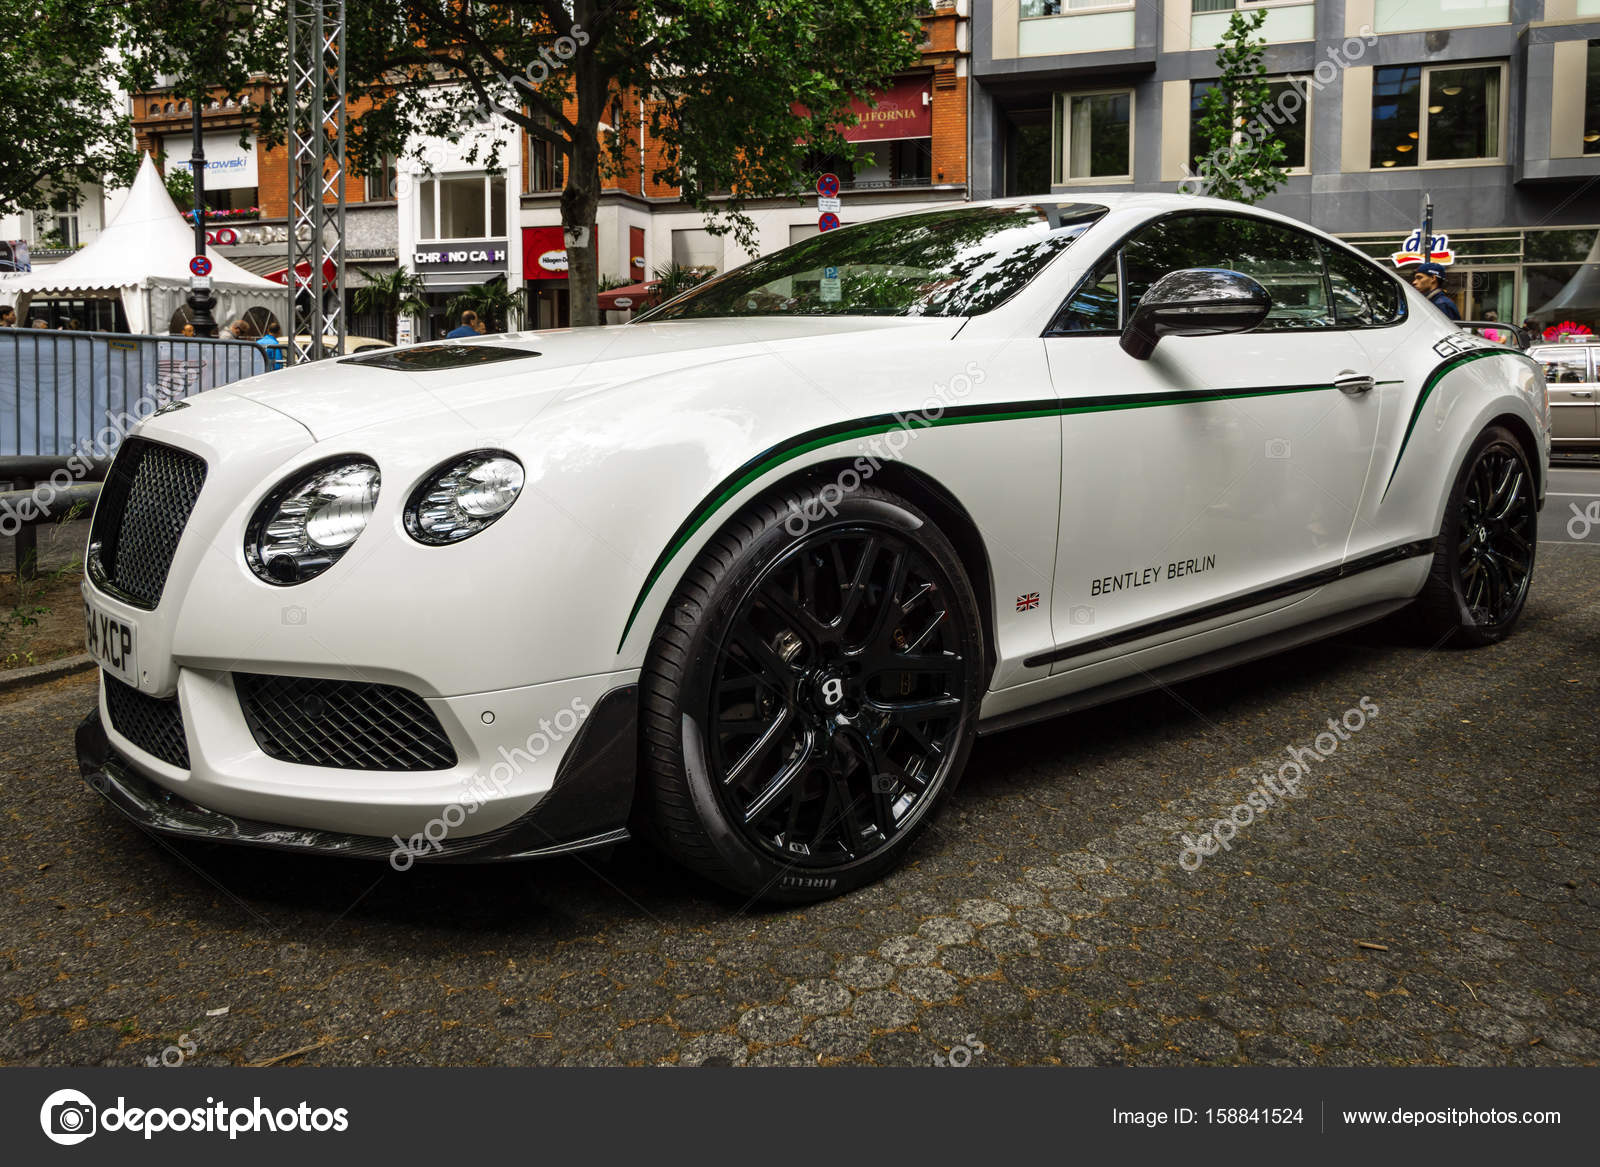 voiture de luxe personnelle bentley continental gt 2017 photo ditoriale s kohl 158841524. Black Bedroom Furniture Sets. Home Design Ideas